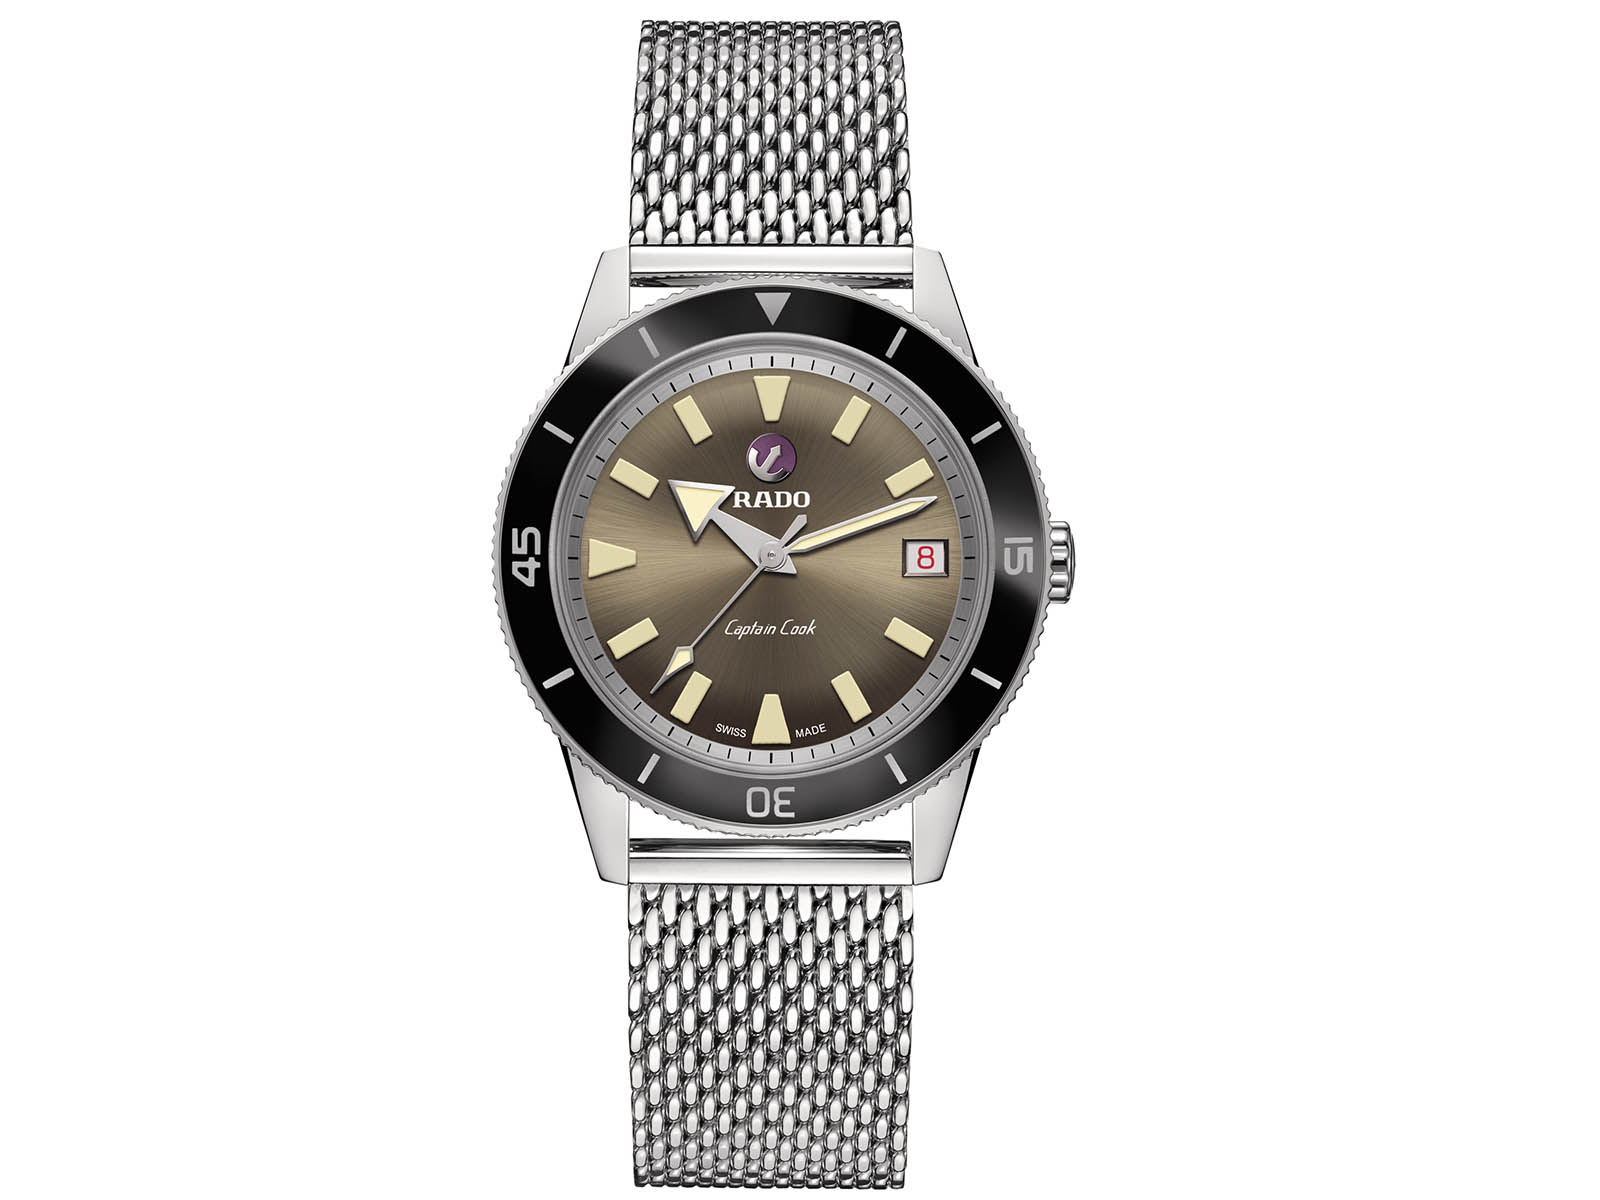 01-763-0500-3-131-rado-captain-cook-automatic-limited-edition-8.jpg